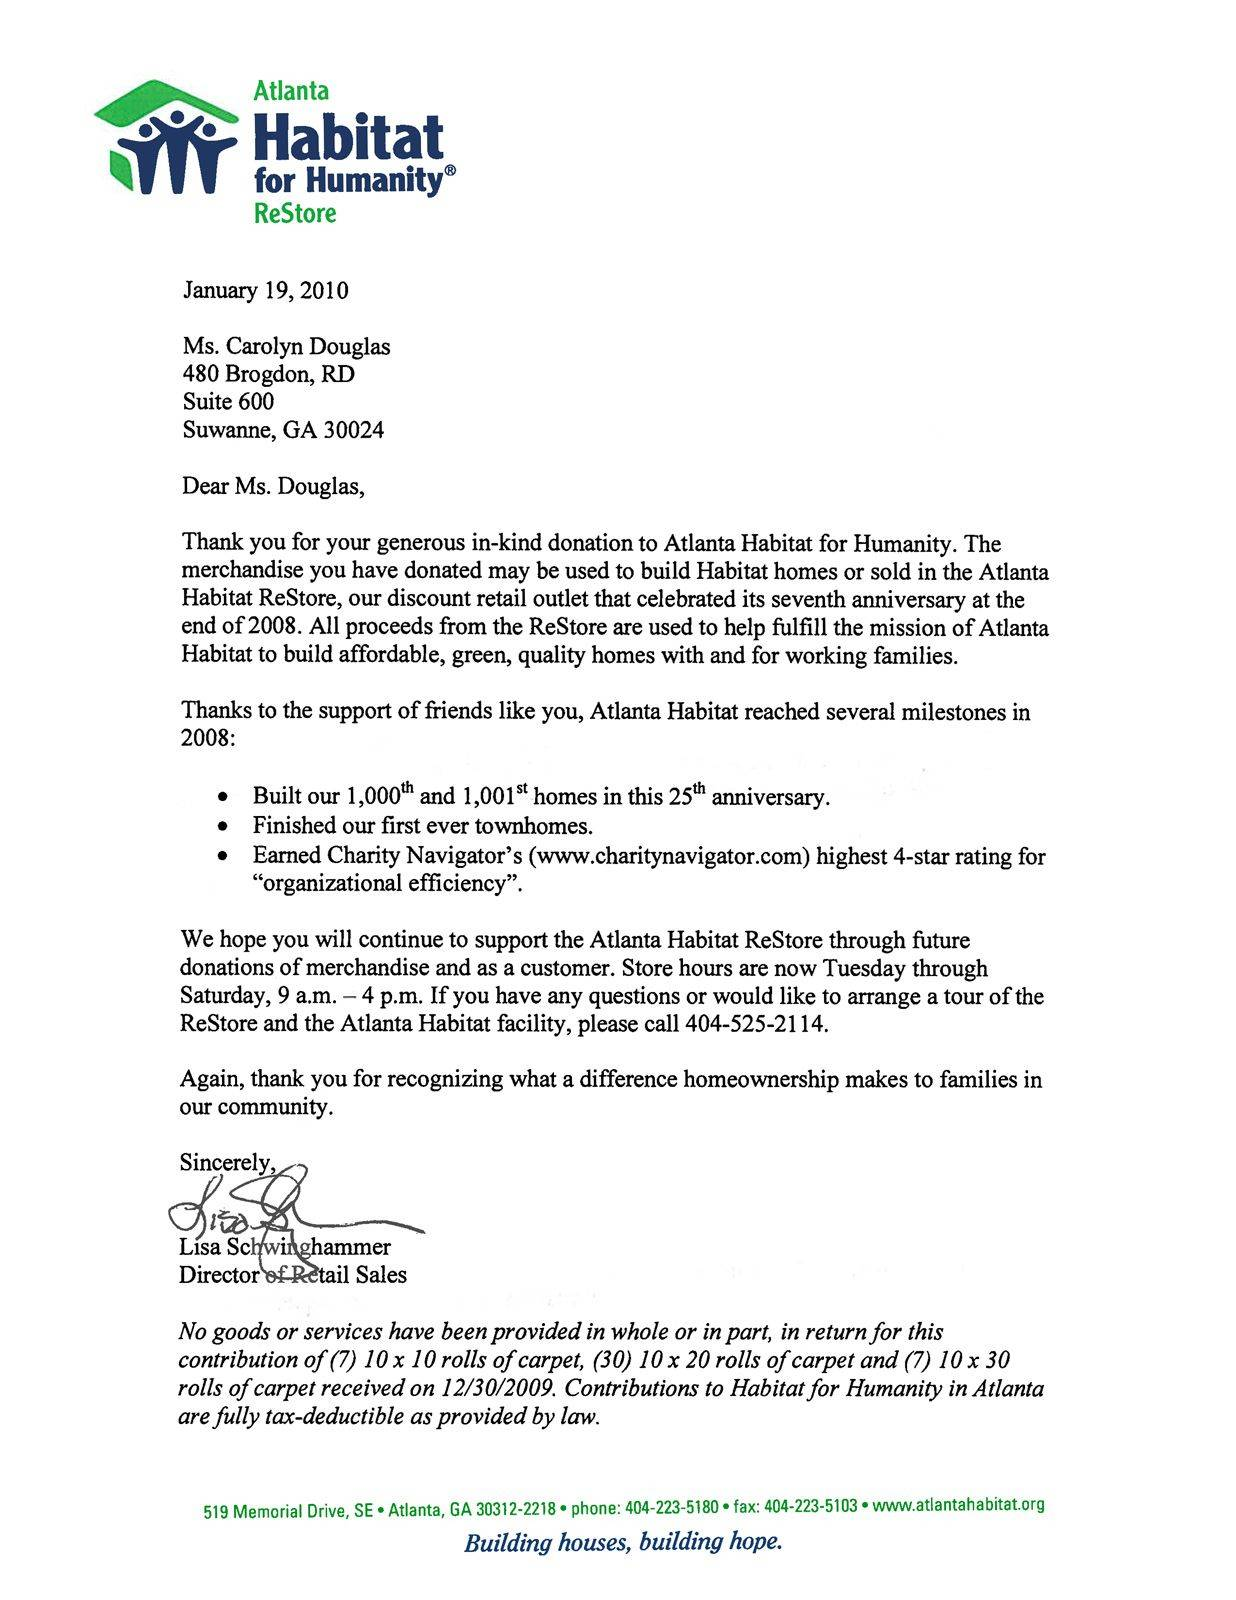 Memorial Contribution Letter Template